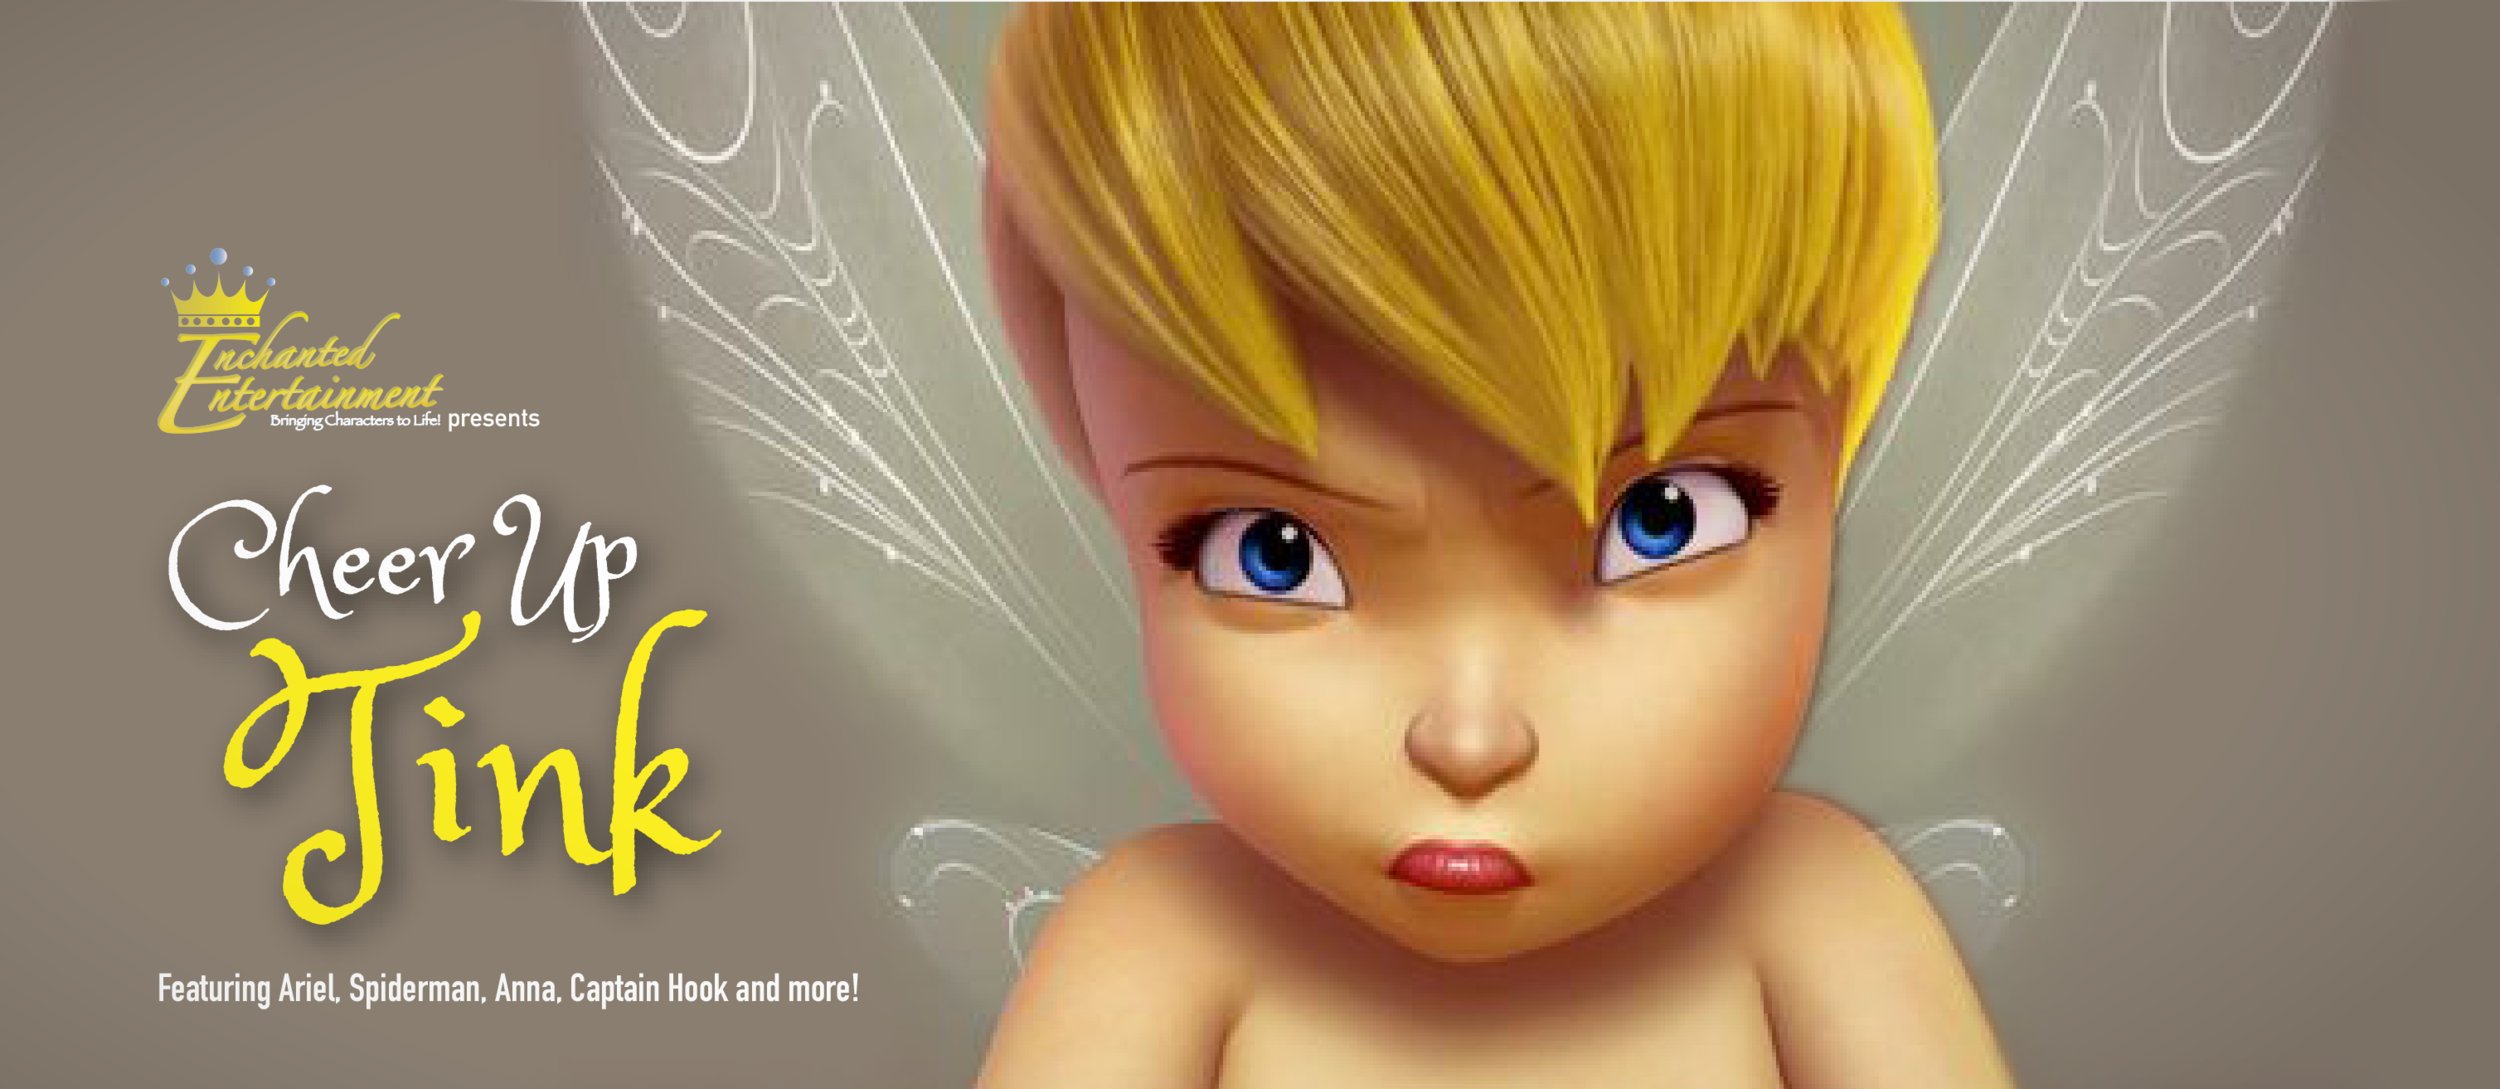 Cheer Up Tink Cover 2.0 (Desktop Dimensions)-01-01 (2).png